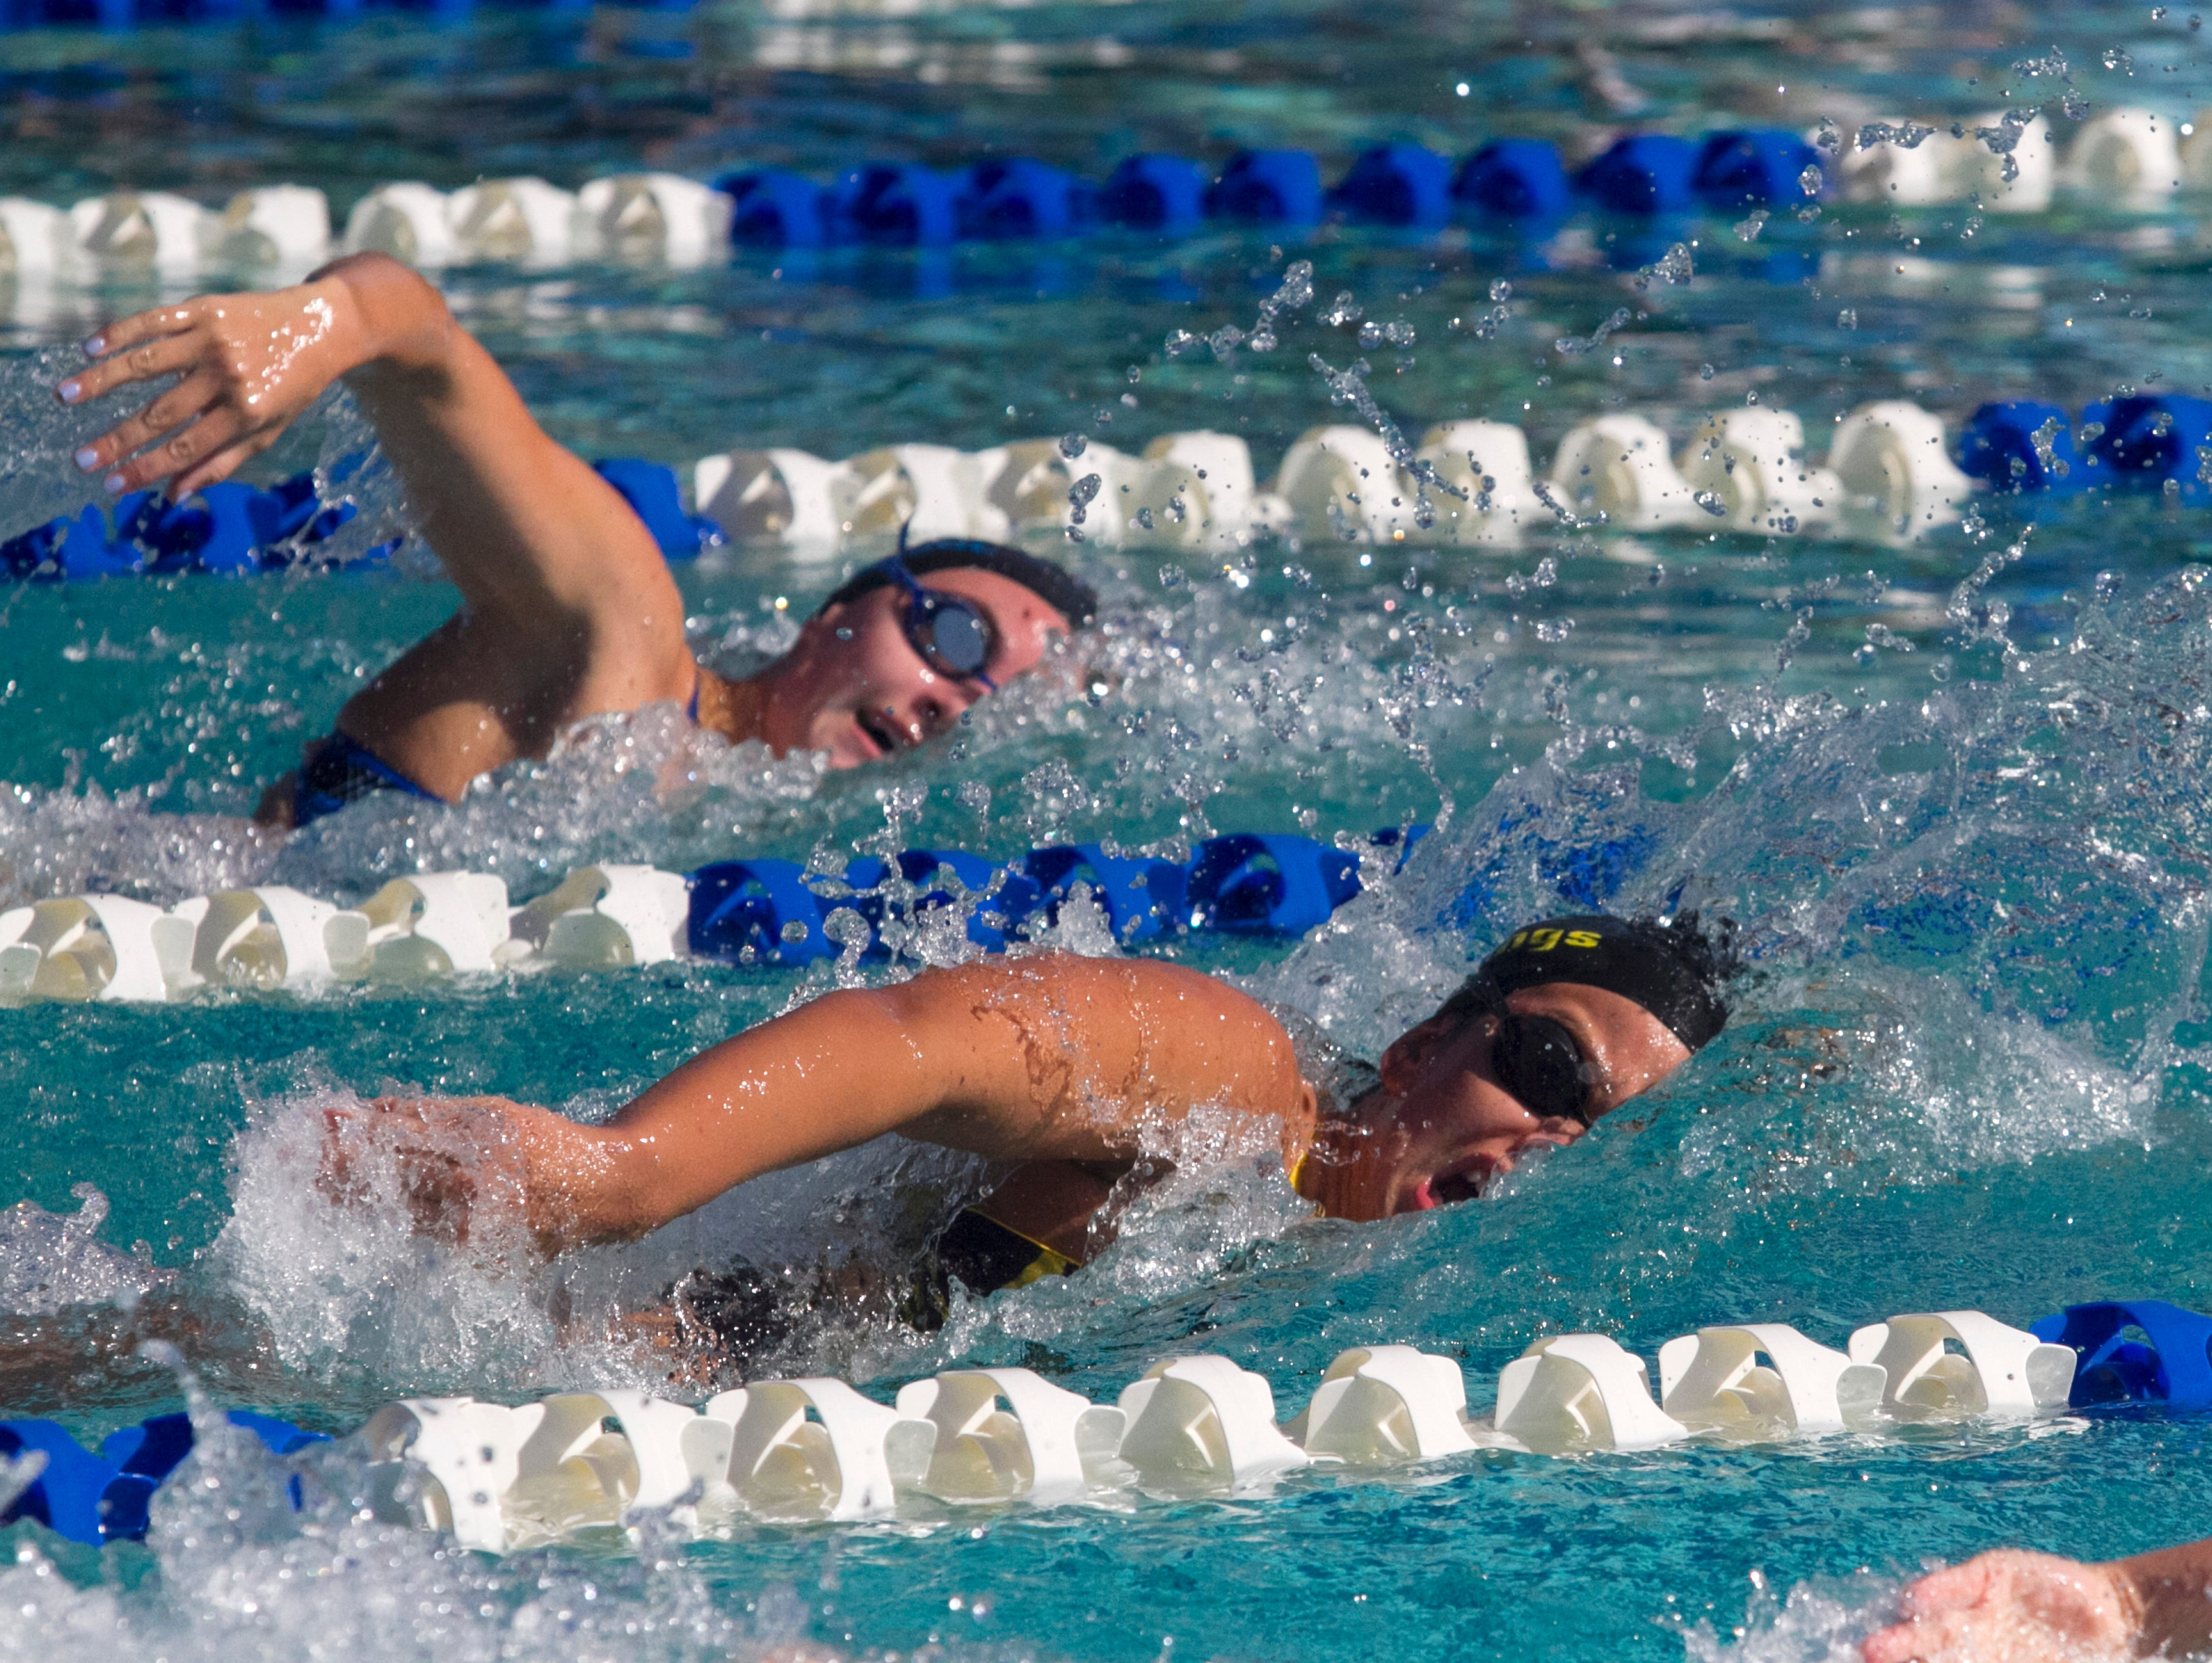 Florencia Almanda, right, of Bishop Verot and Emma Feehery of Community School of Naples swim the 200 Yard Freestyle at the 1A District 9 Swimming Championships on Wednesday. Feehery finished first and Almanda was second place. Almanda's teammate, Hannah VanDress finished third.